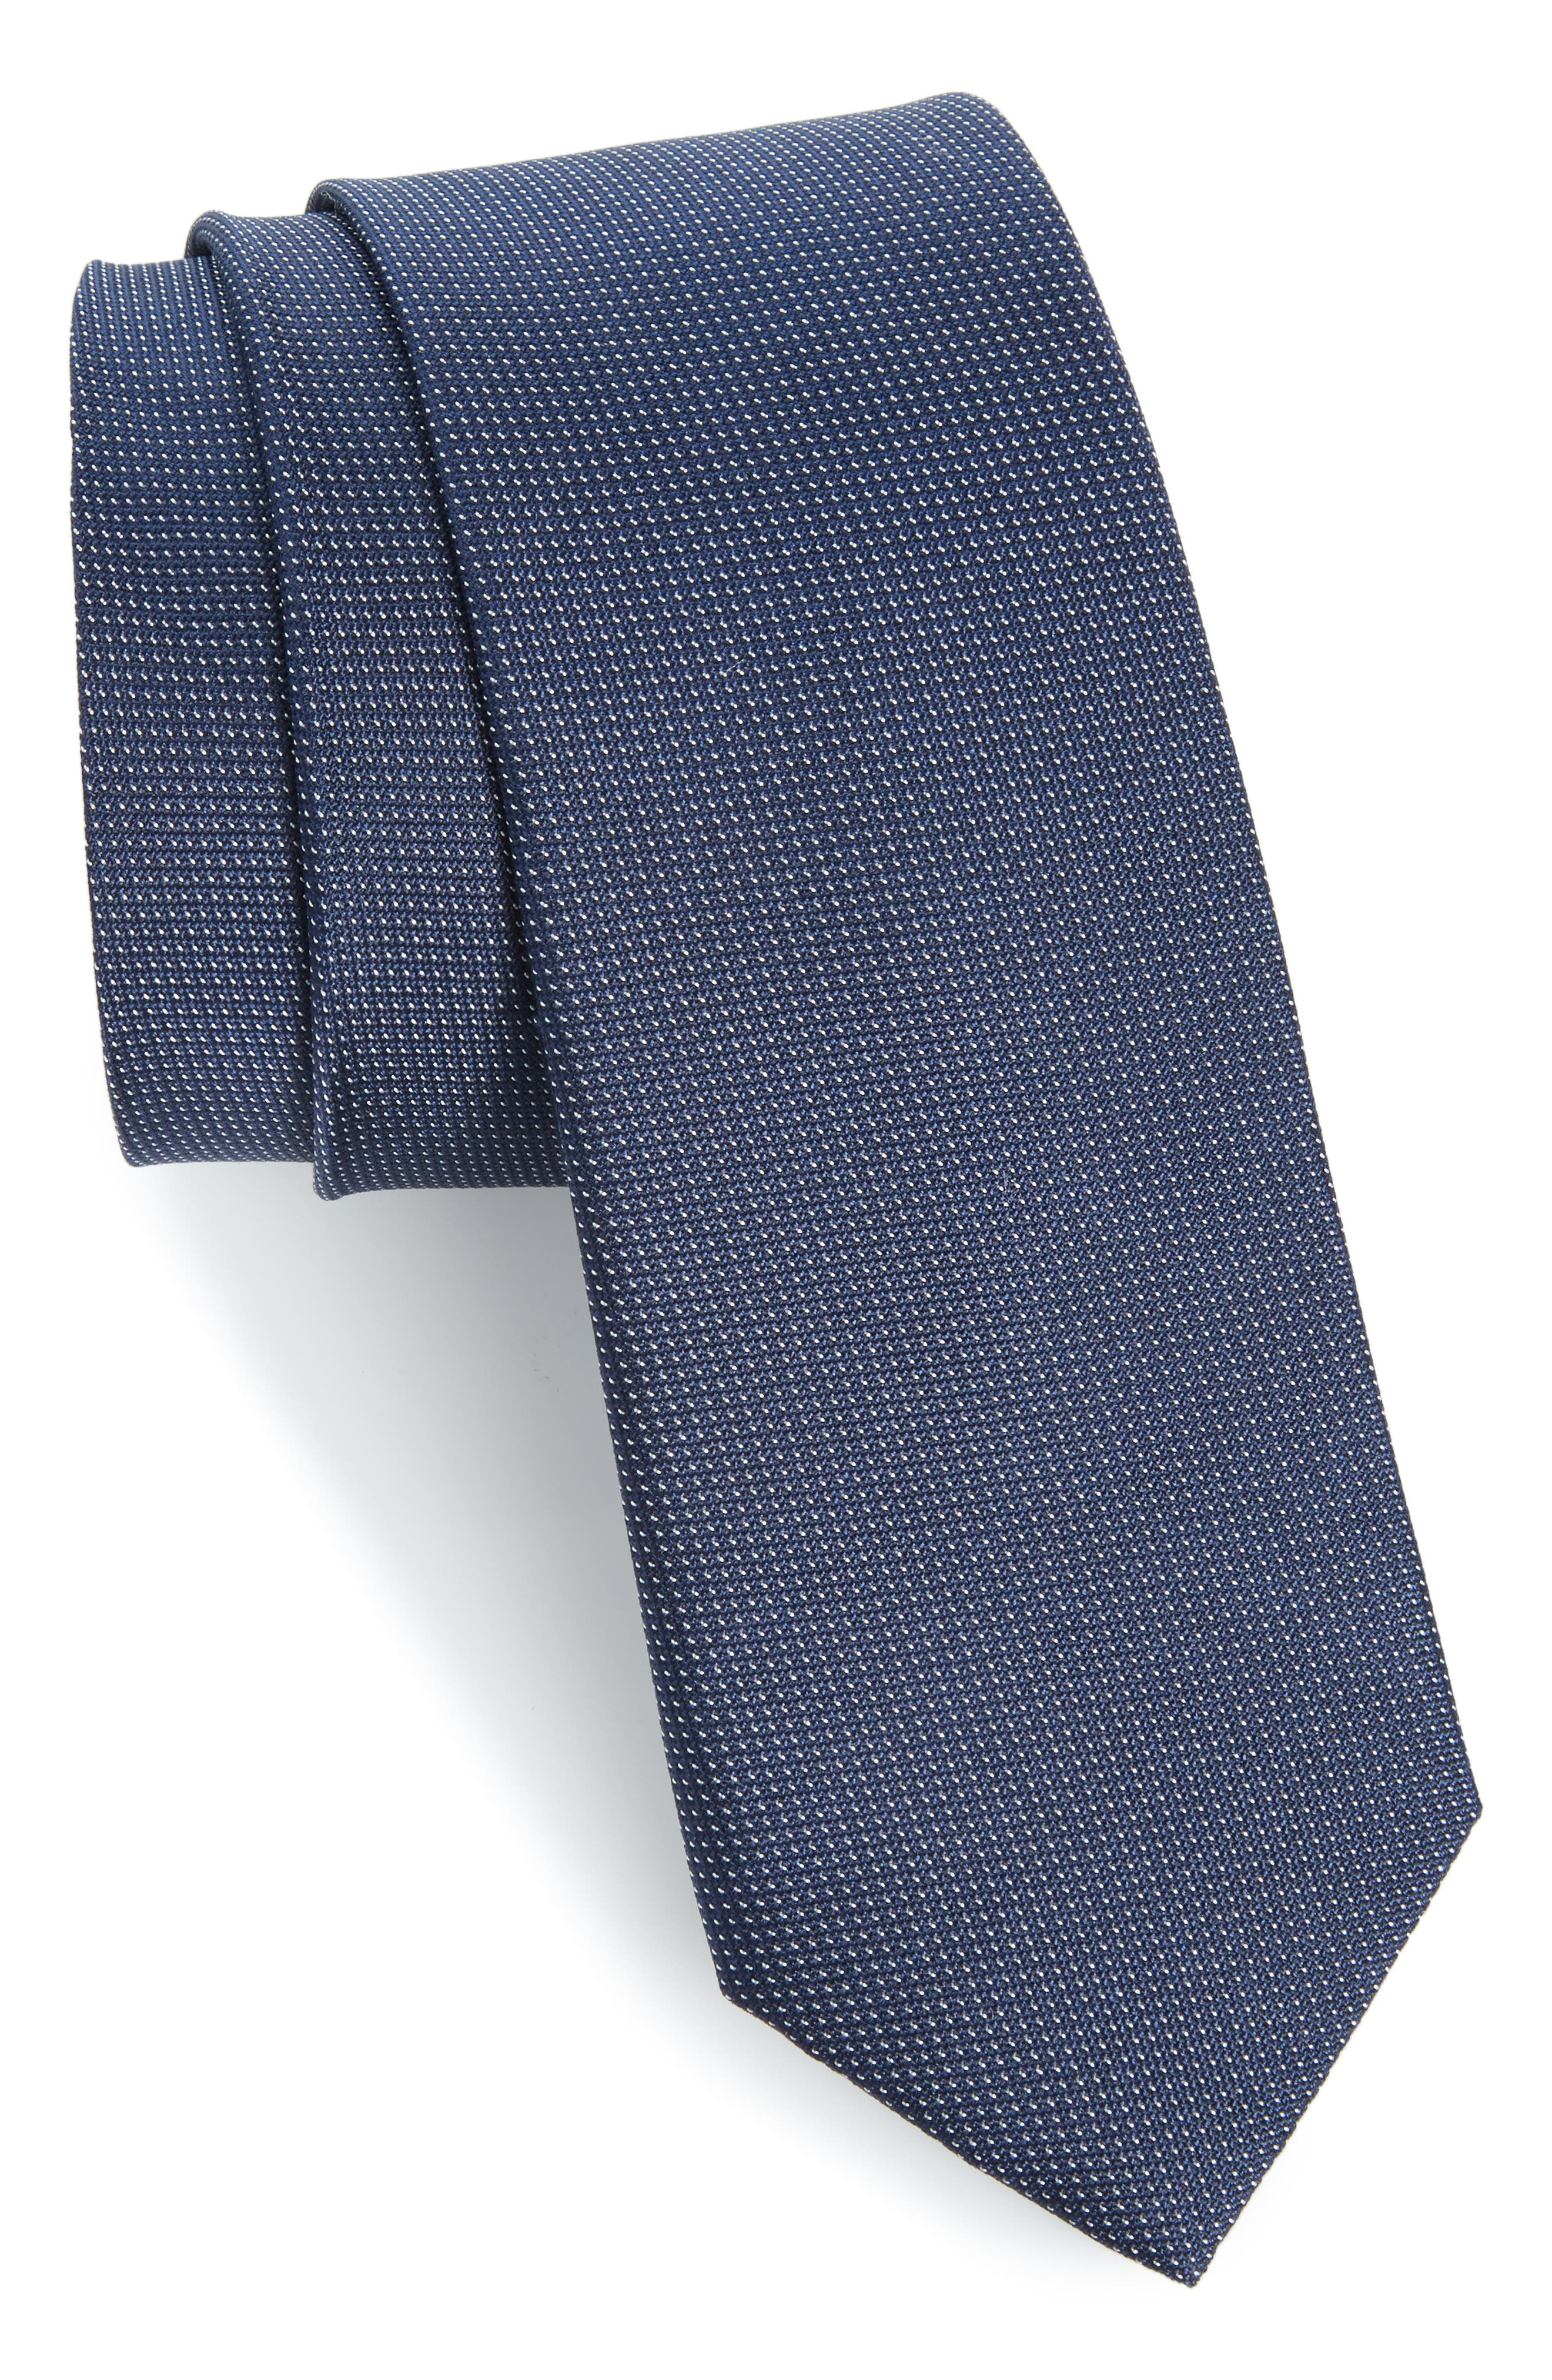 Eternity Unsolid Solid Silk Skinny Tie,                             Main thumbnail 1, color,                             411